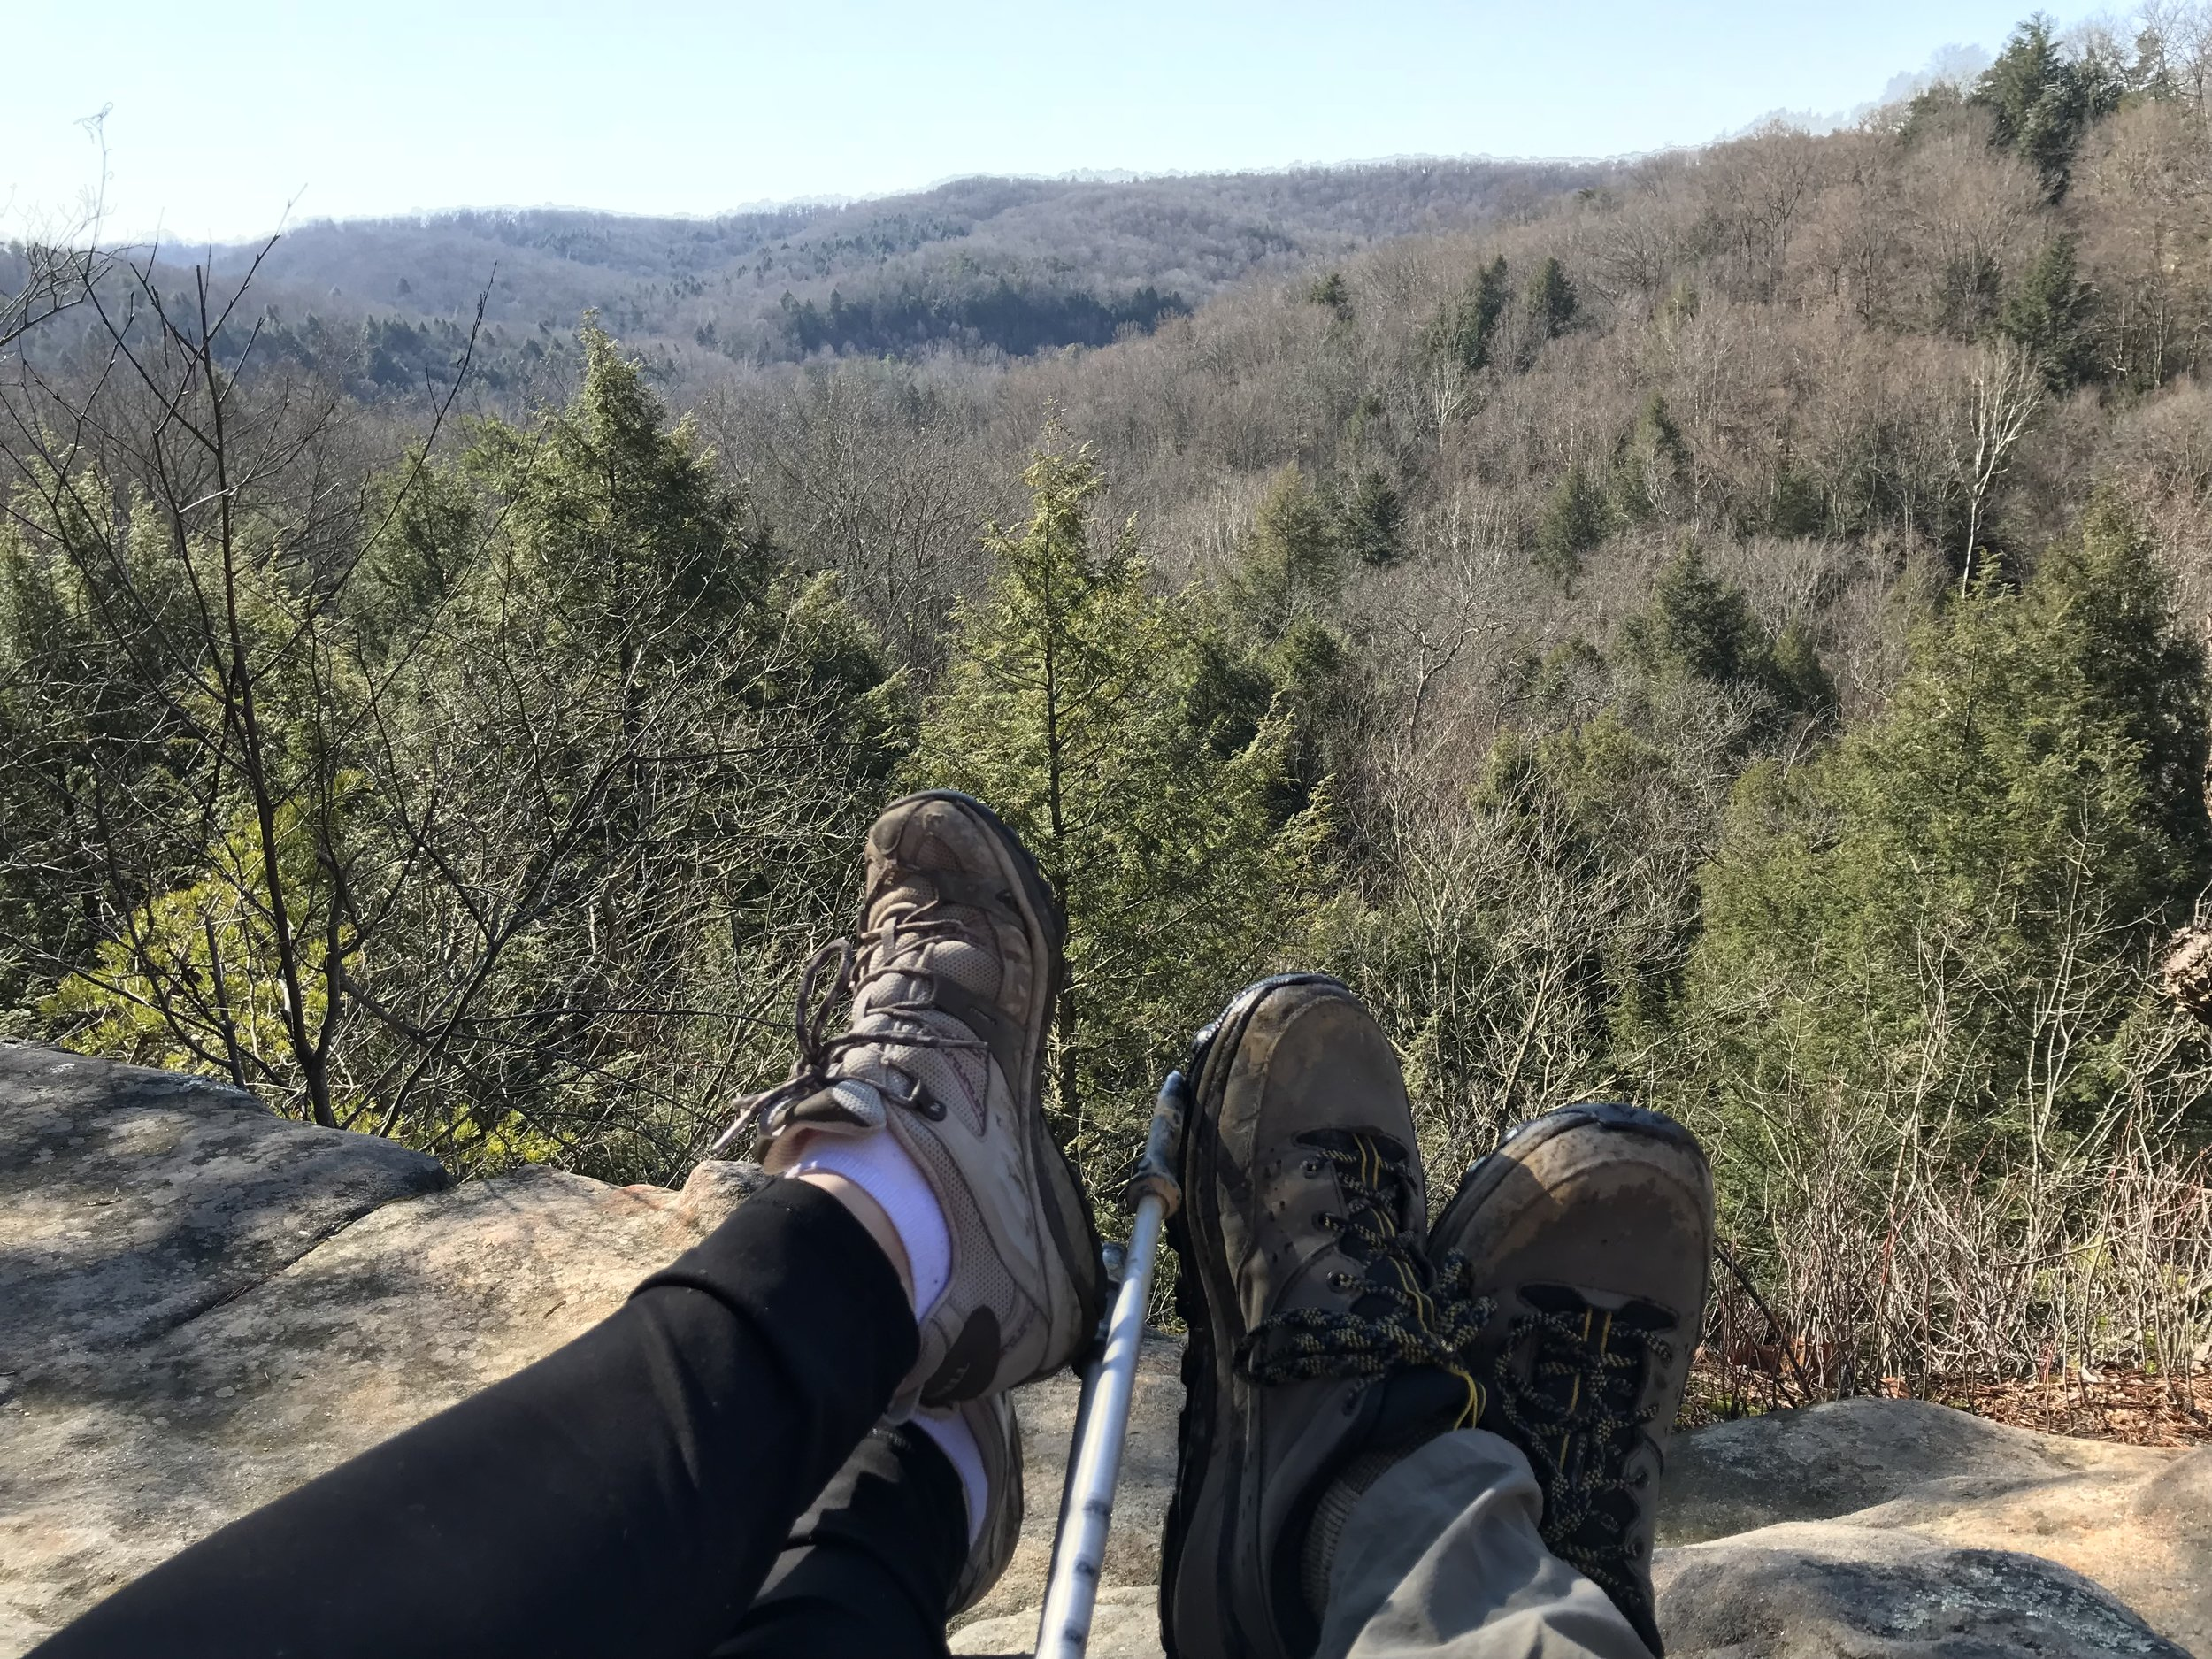 Hocking Hills State Park in Ohio. A hiker's paradise...for Ohio at least.